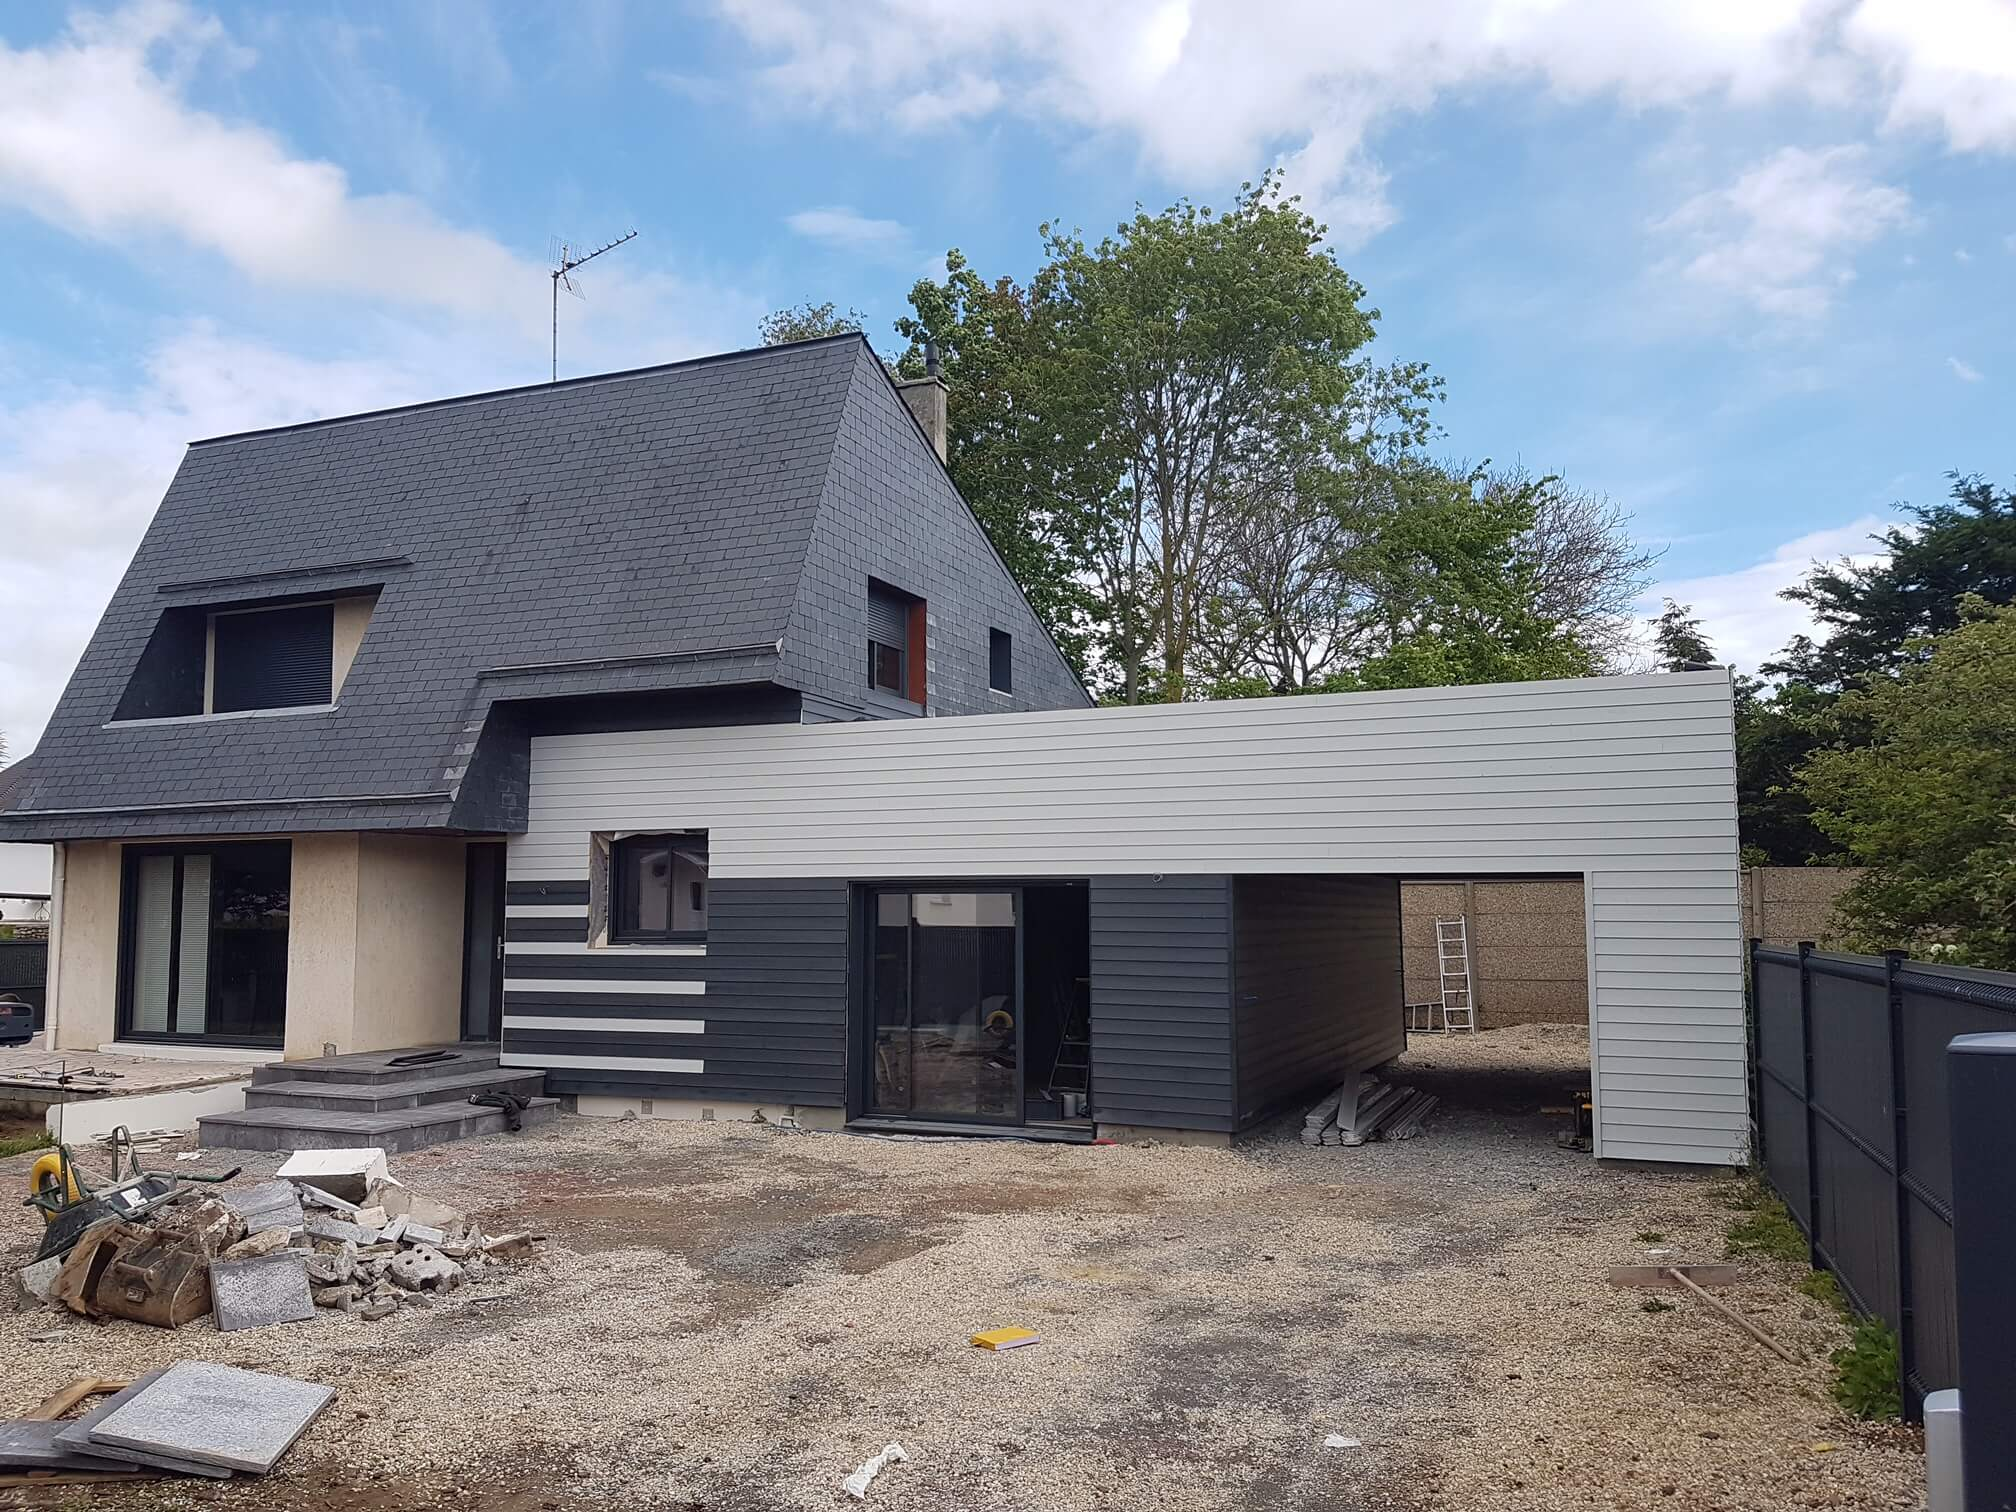 Ossature bois upstructures caen for Extension maison bois etage